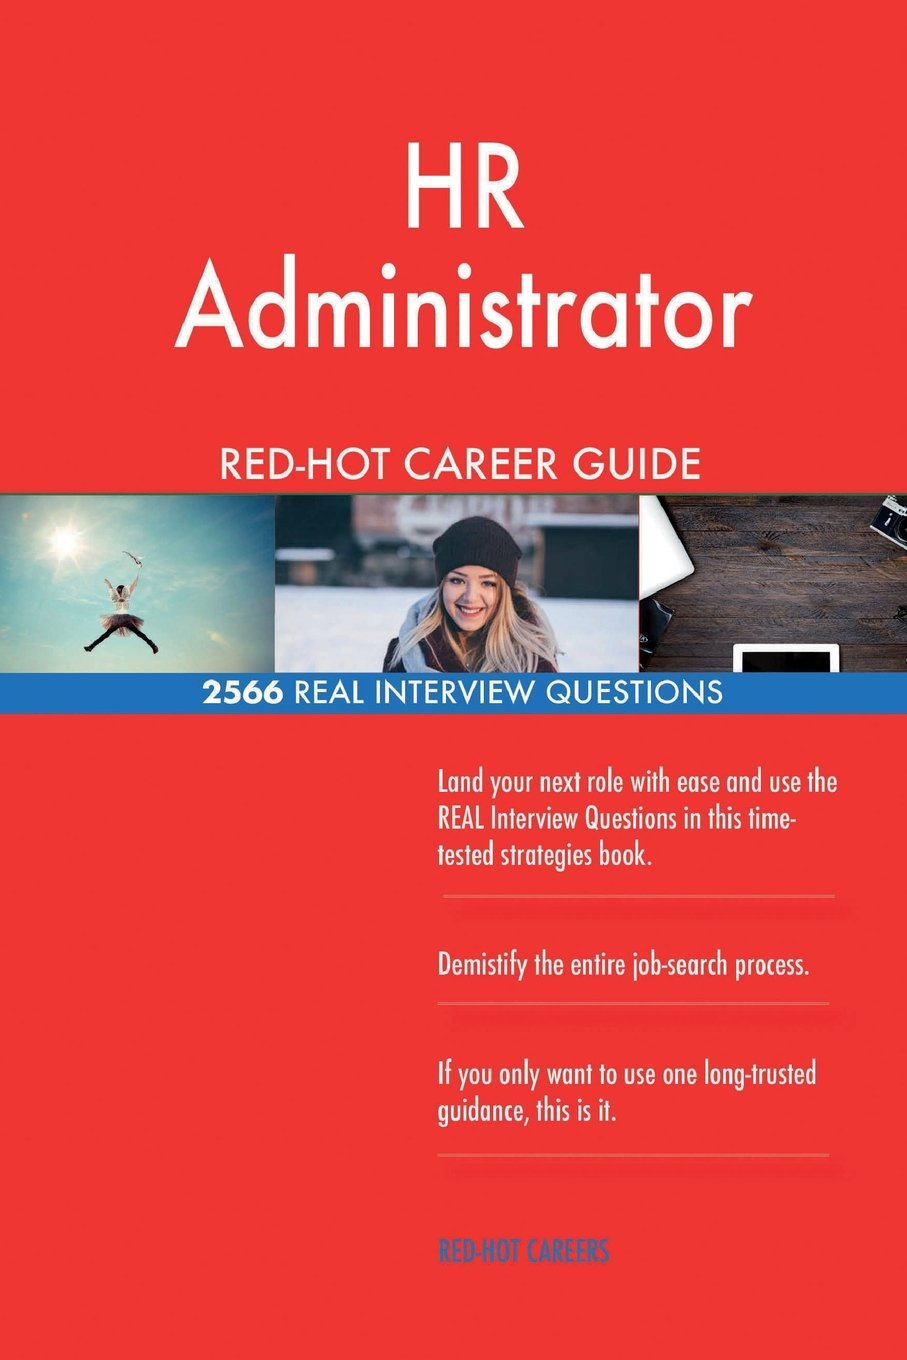 HR Administrator RED-HOT Career Guide; 2566 REAL Interview Questions ebook